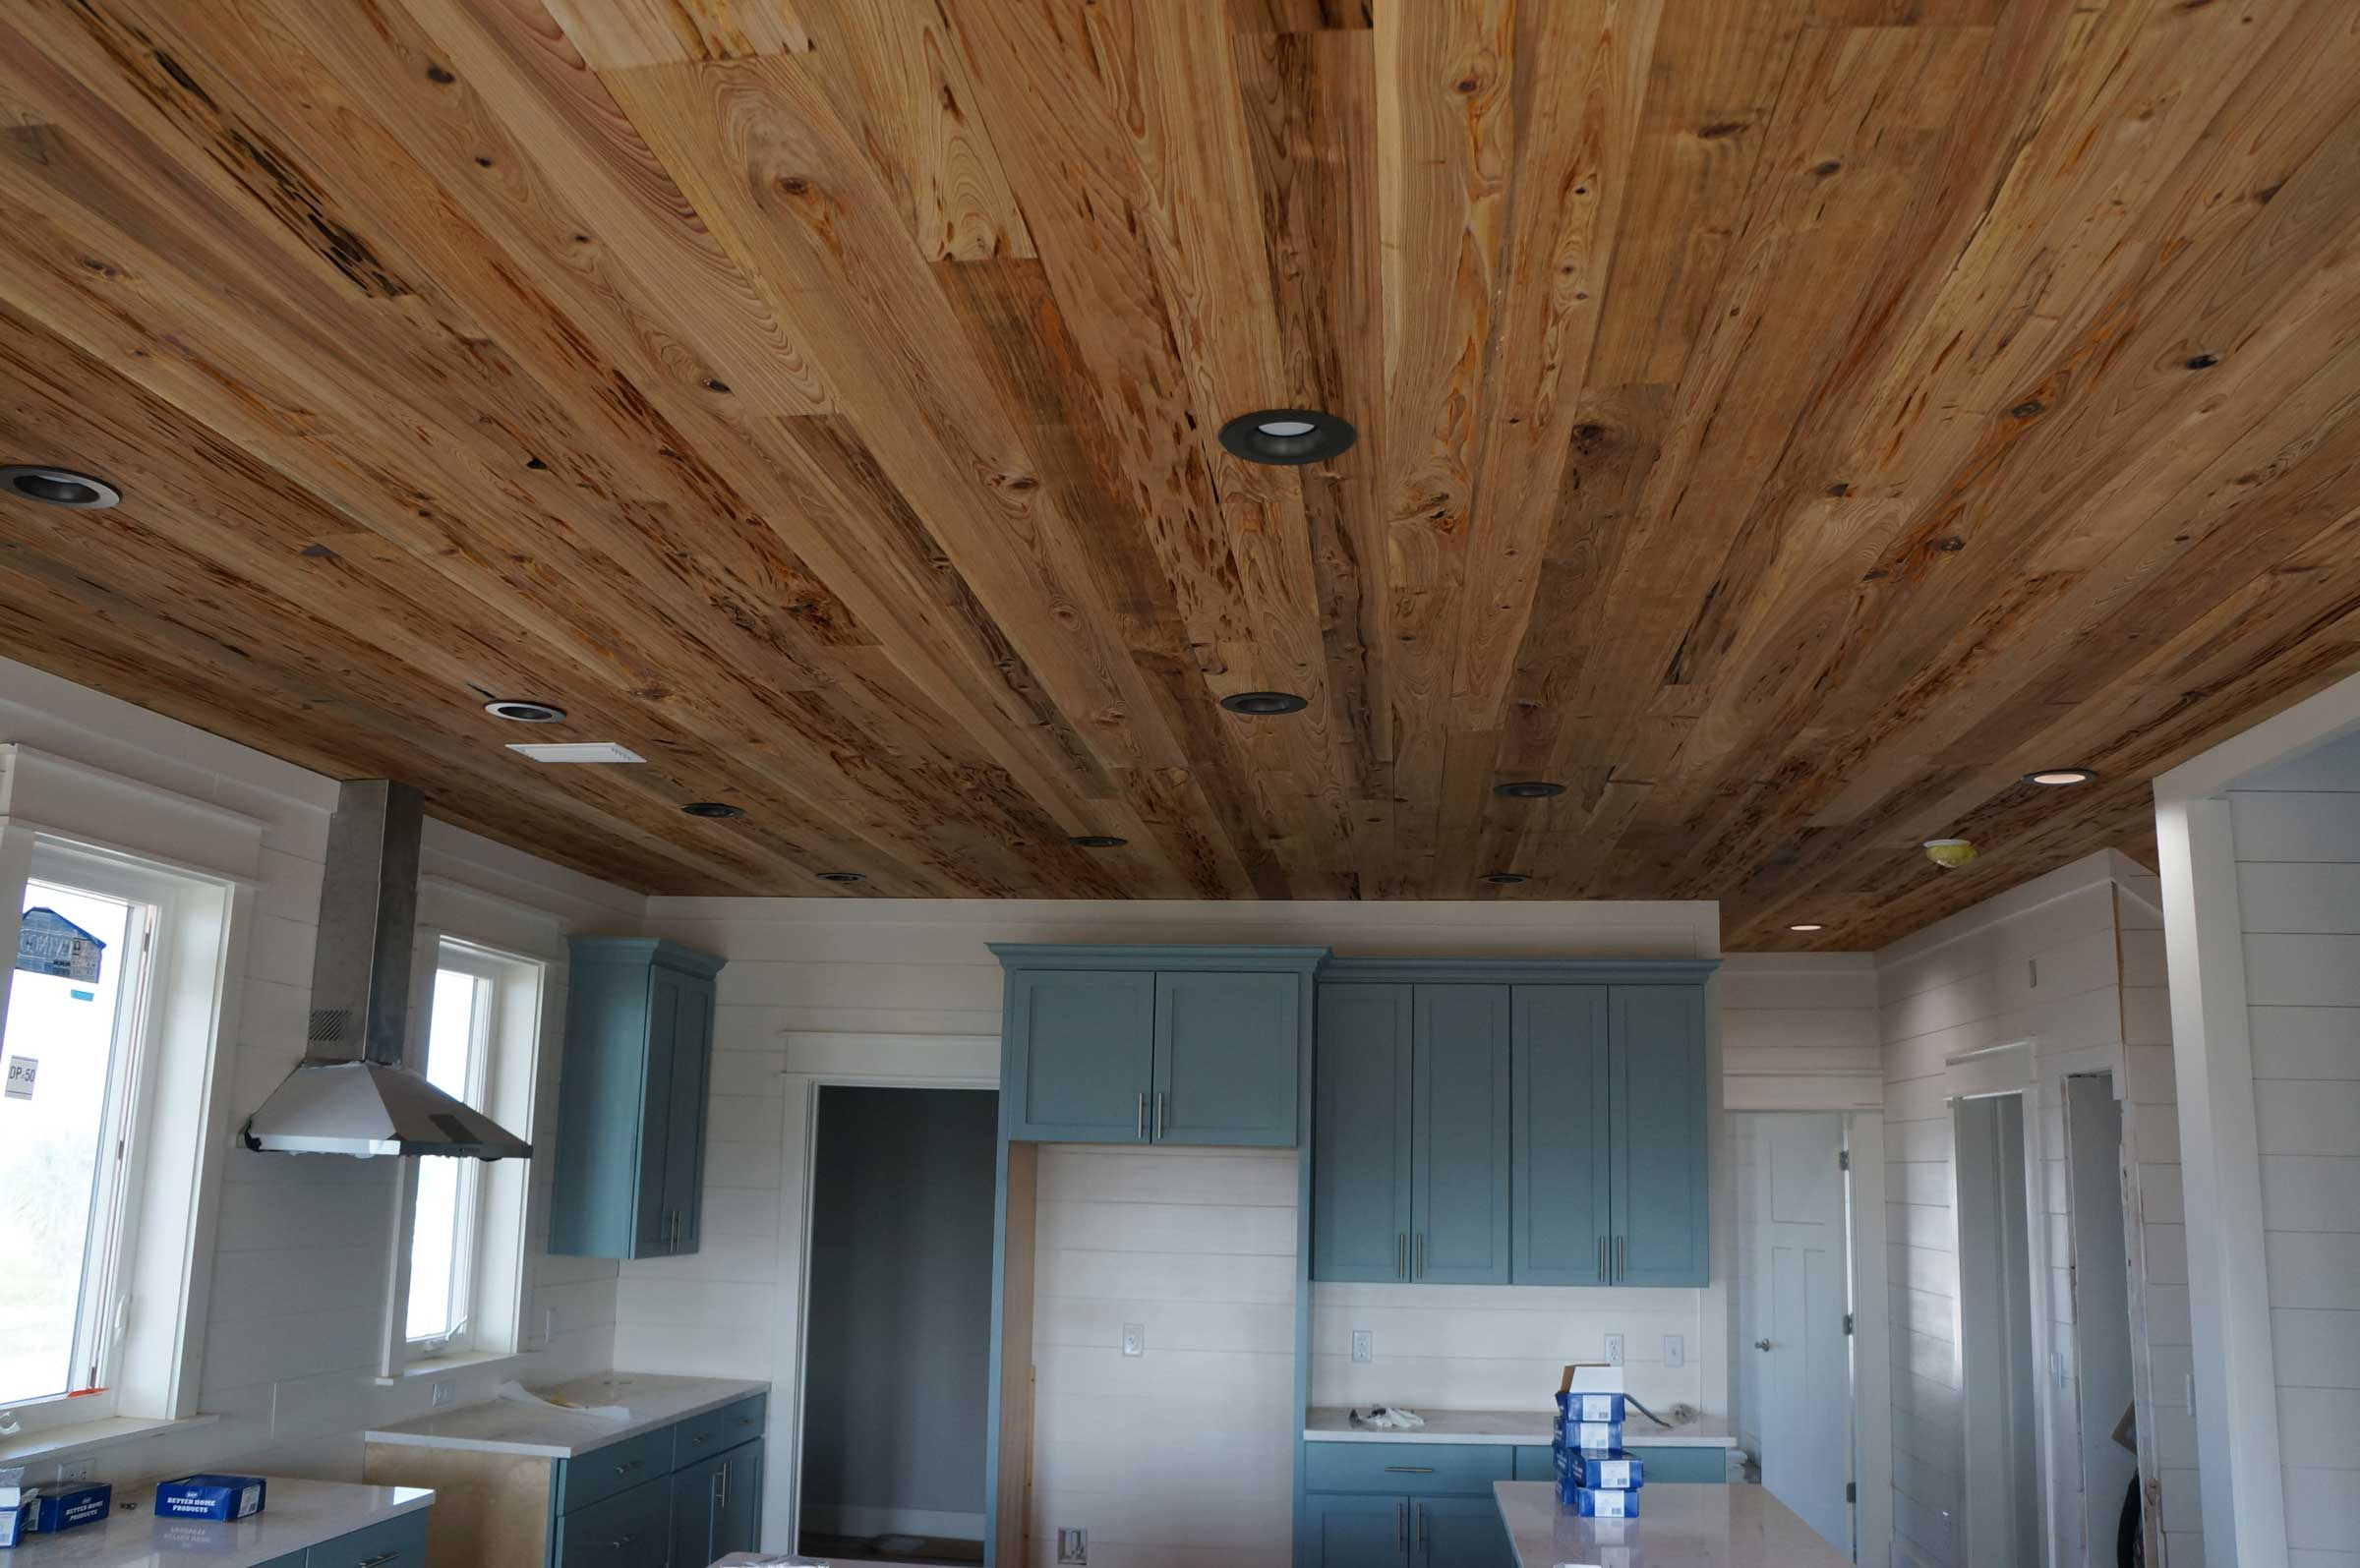 Pot lights in kitchen with unique wood beam ceiling